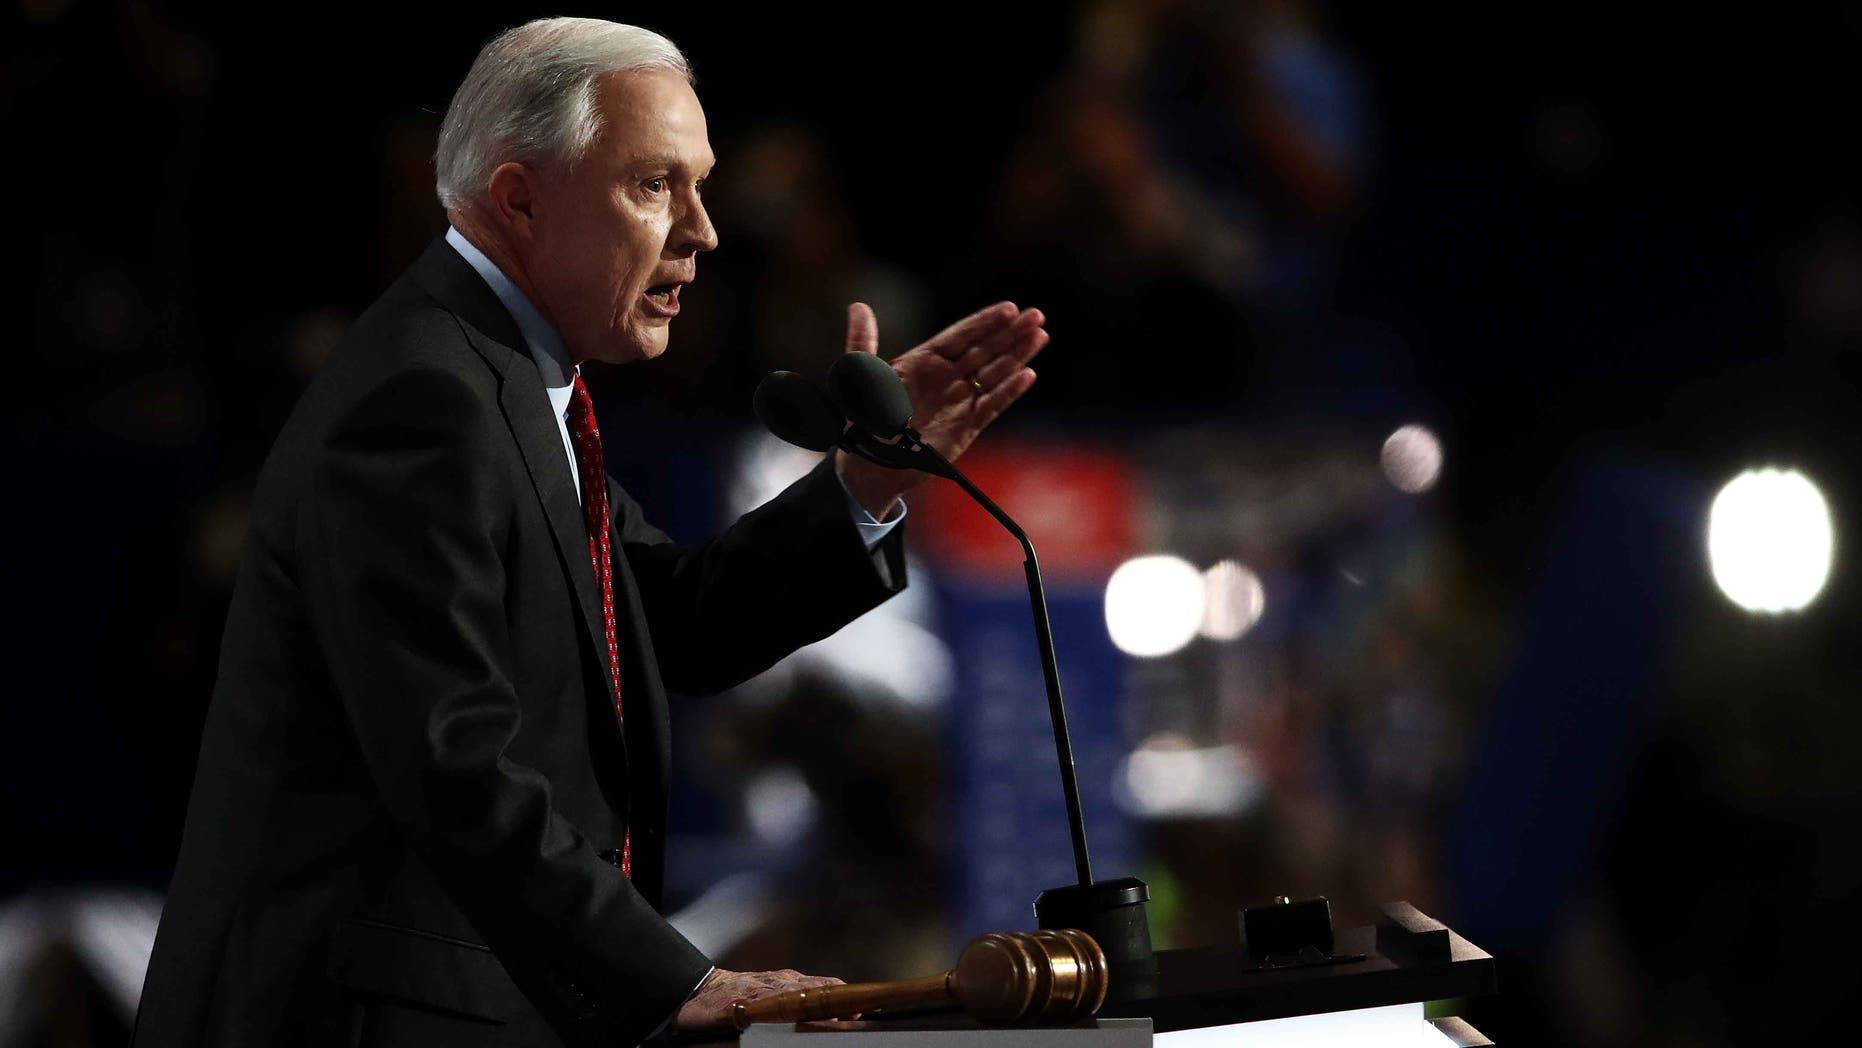 Sen. Jeff Sessions during the Republican National Convention on July 19, 2016.